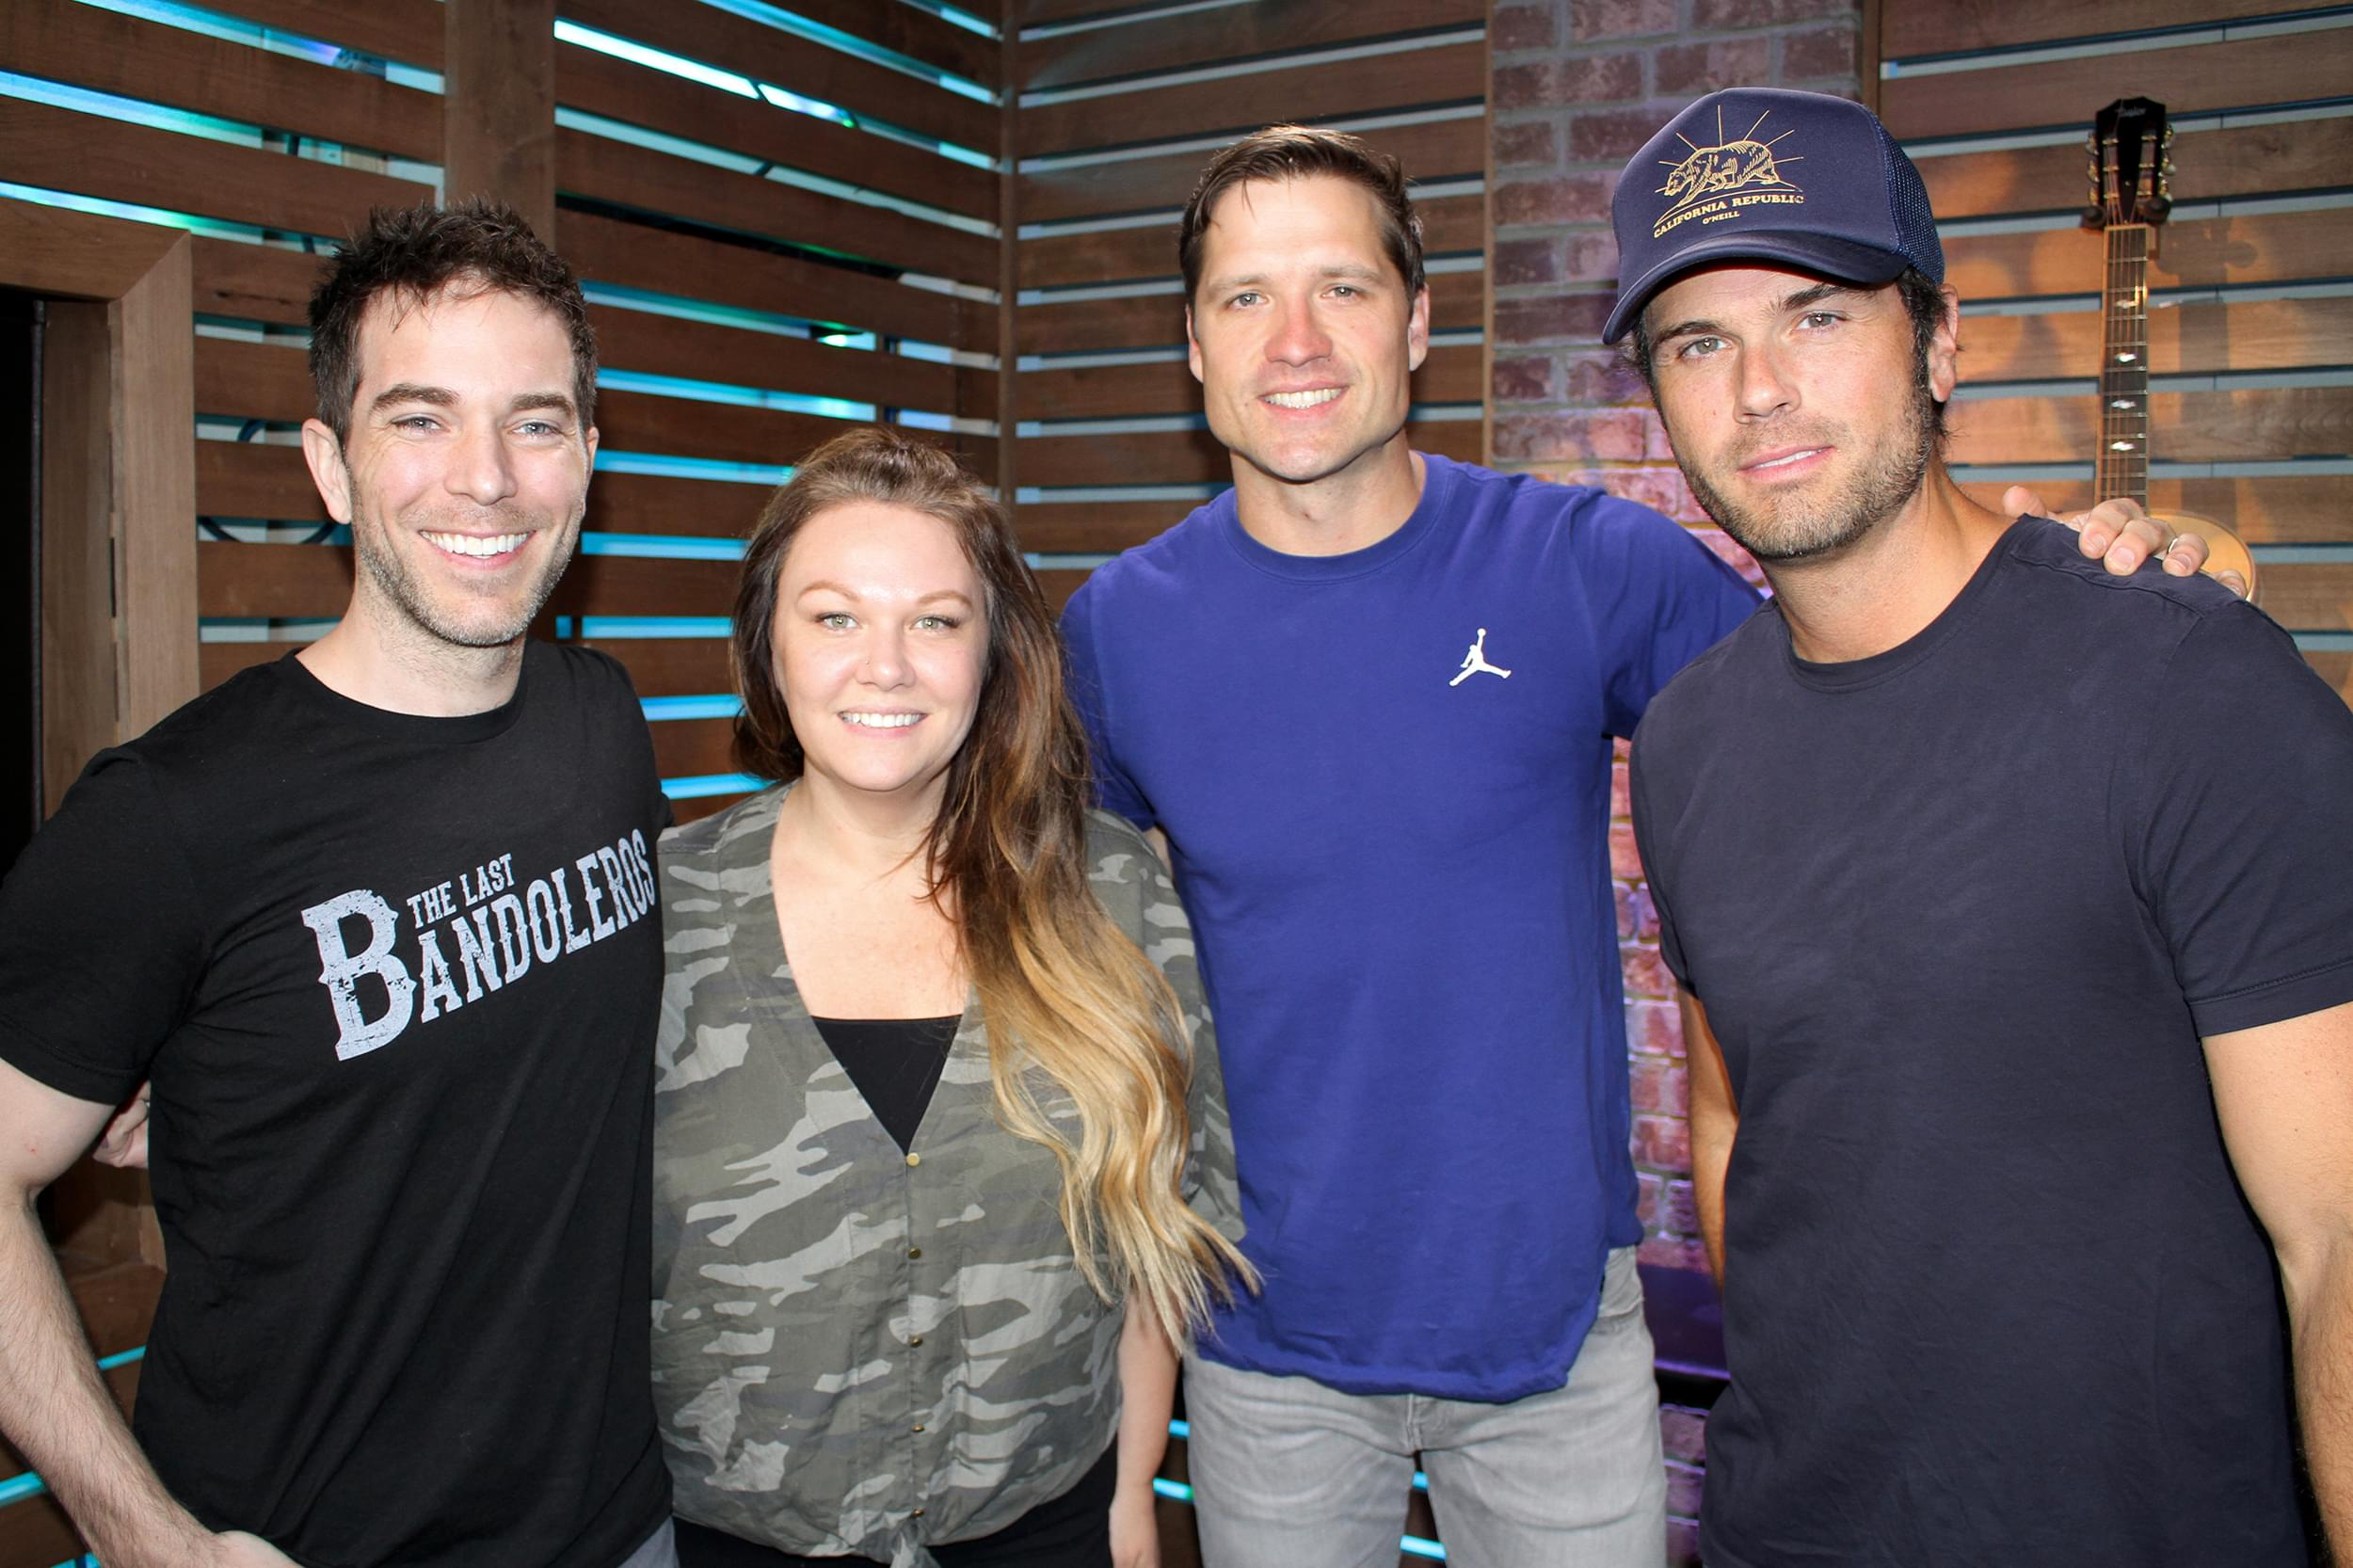 """Walker Hayes Performs """"Don't Let Her,"""" Talks About His Hilariously Chaotic Household, the Possibility of Going On Stage Shirtless & MORE"""